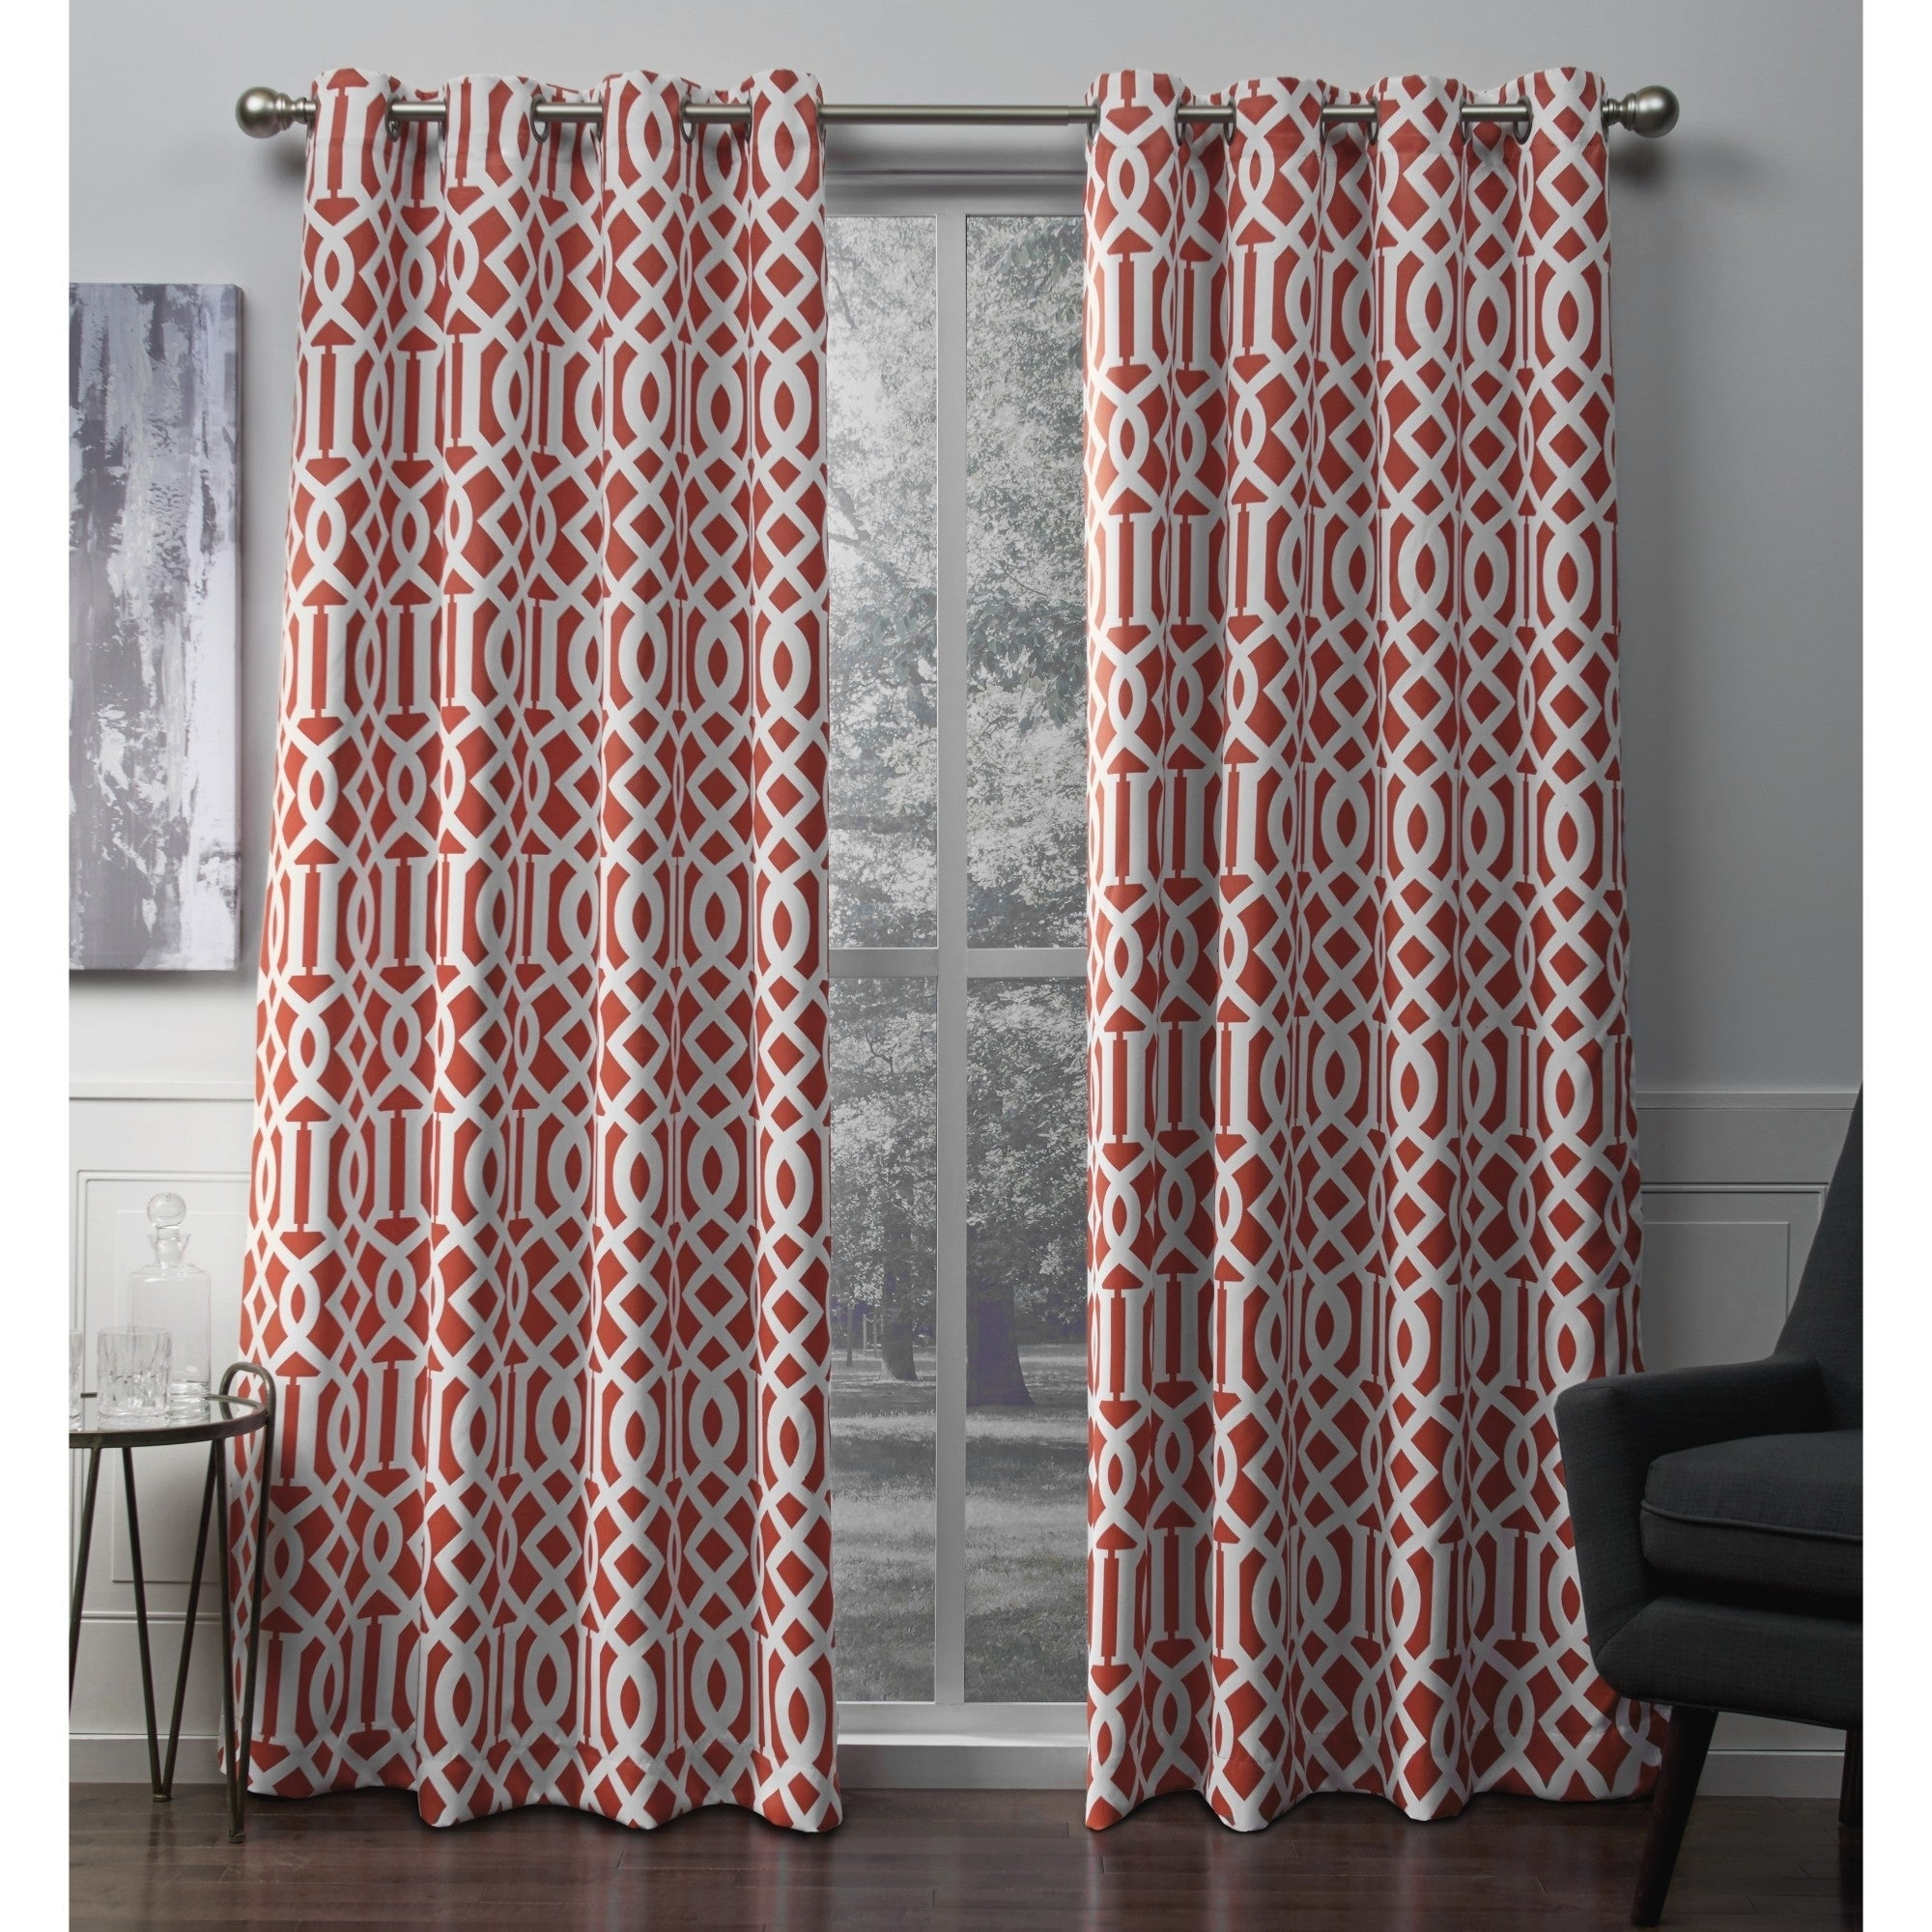 Ati Home Scrollwork Sateen Blackout Grommet Top Curtain Panel Pair Intended For Sateen Twill Weave Insulated Blackout Window Curtain Panel Pairs (View 3 of 20)